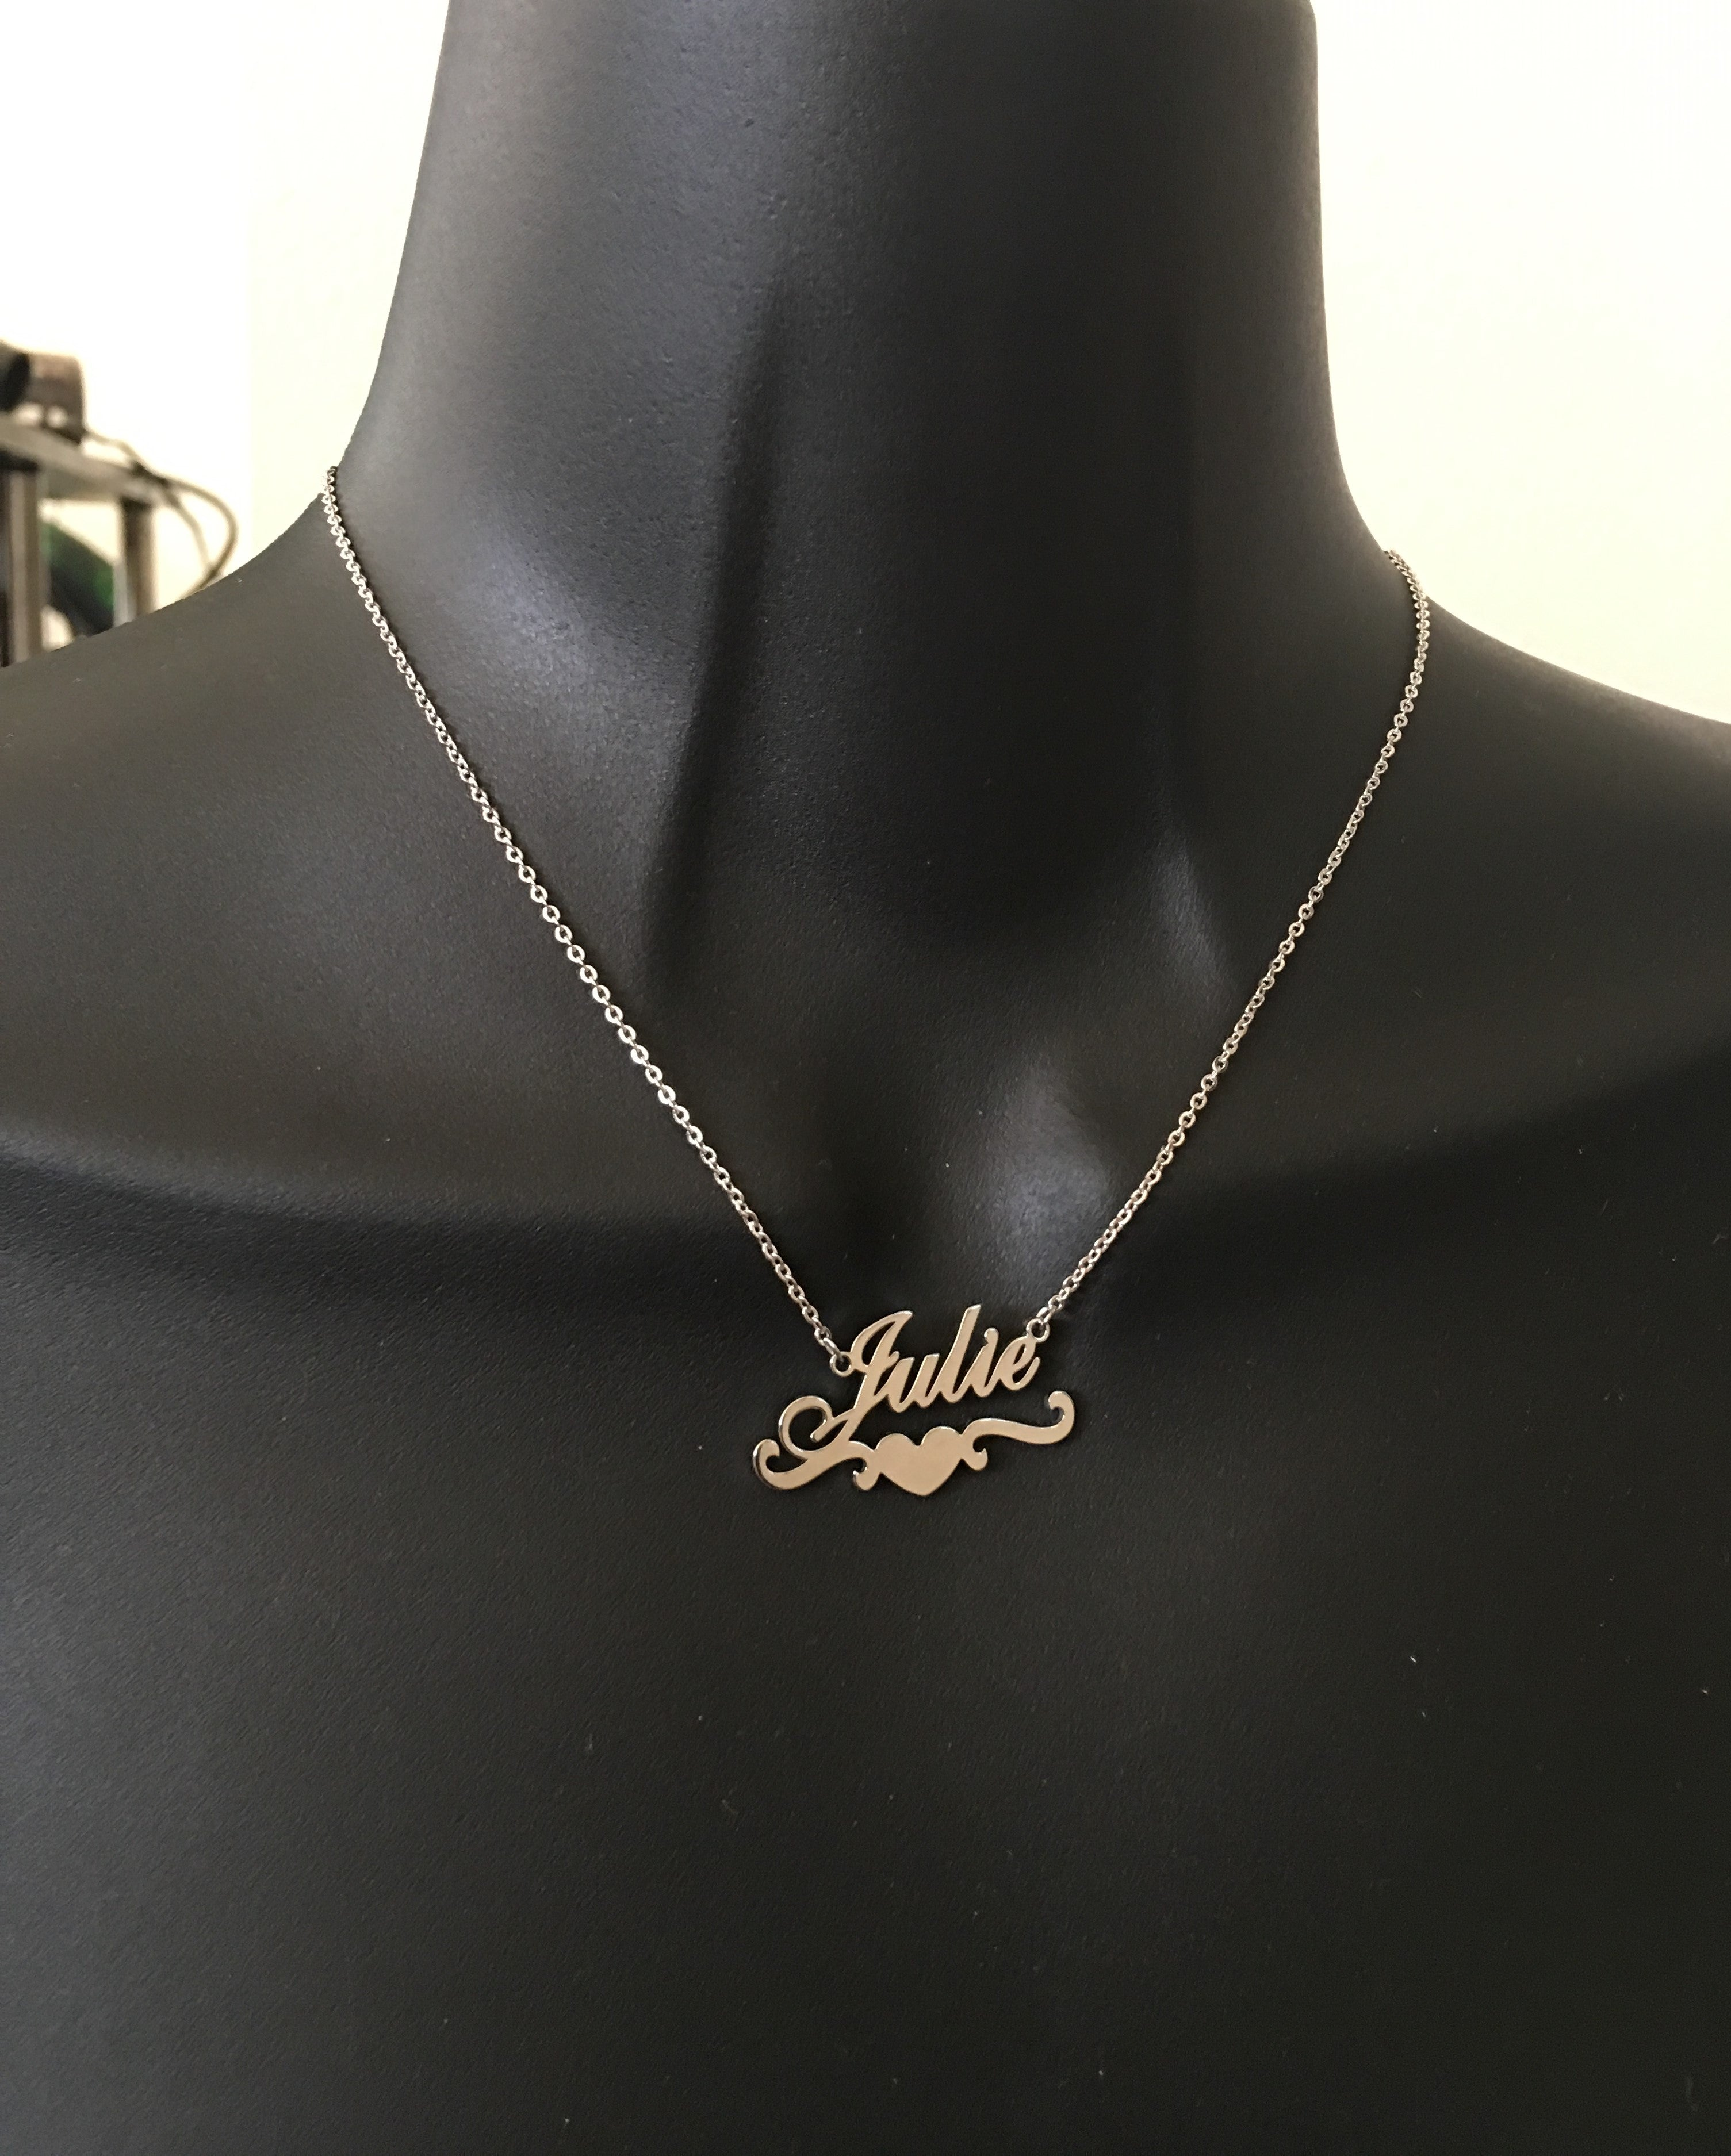 Personalized, heart underlined name necklace